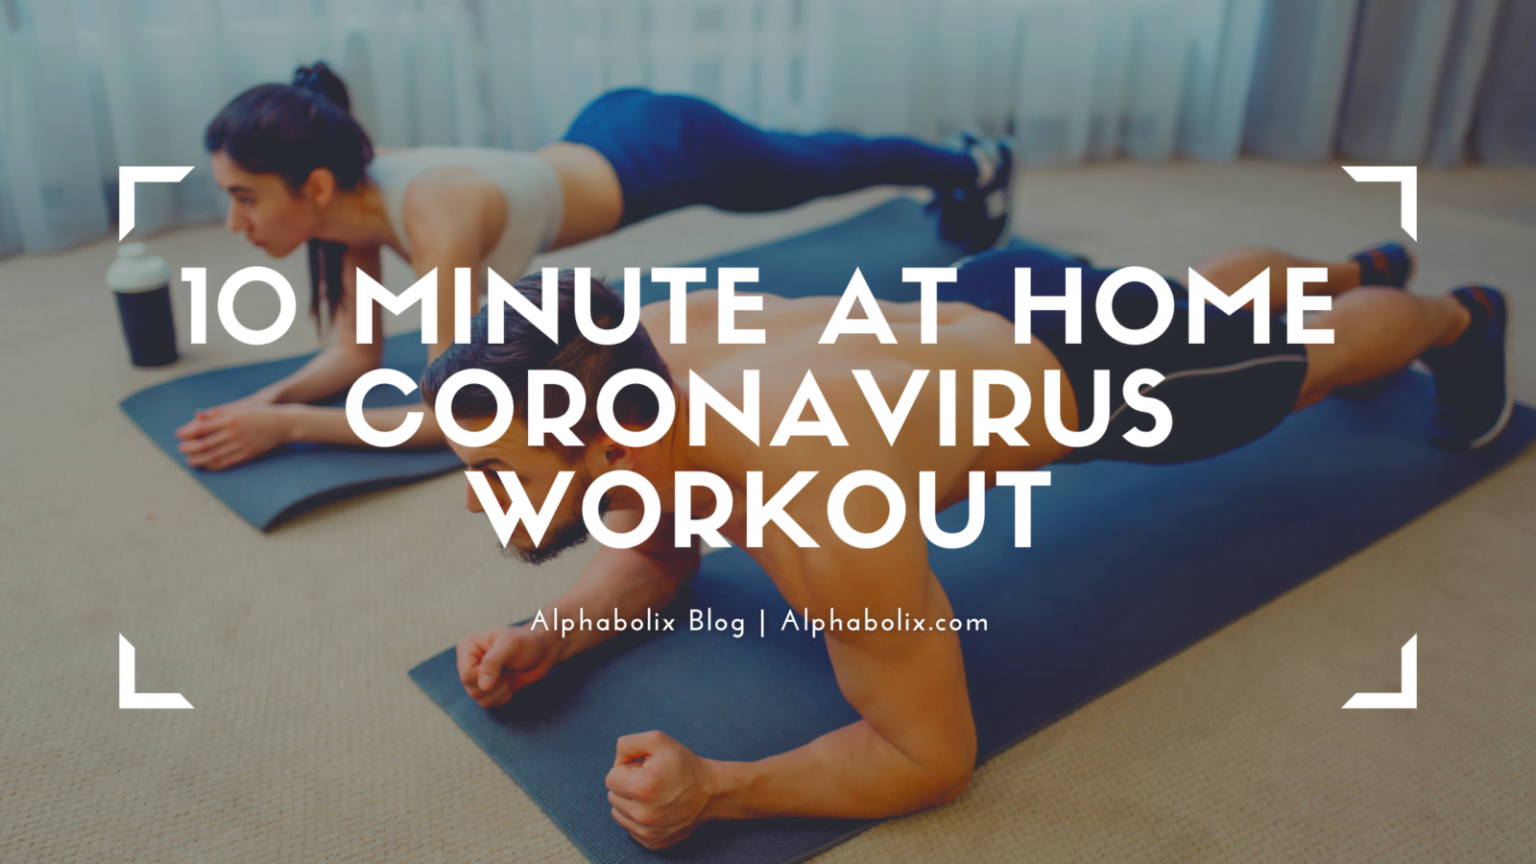 10 Minute At Home Coronavirus Workout